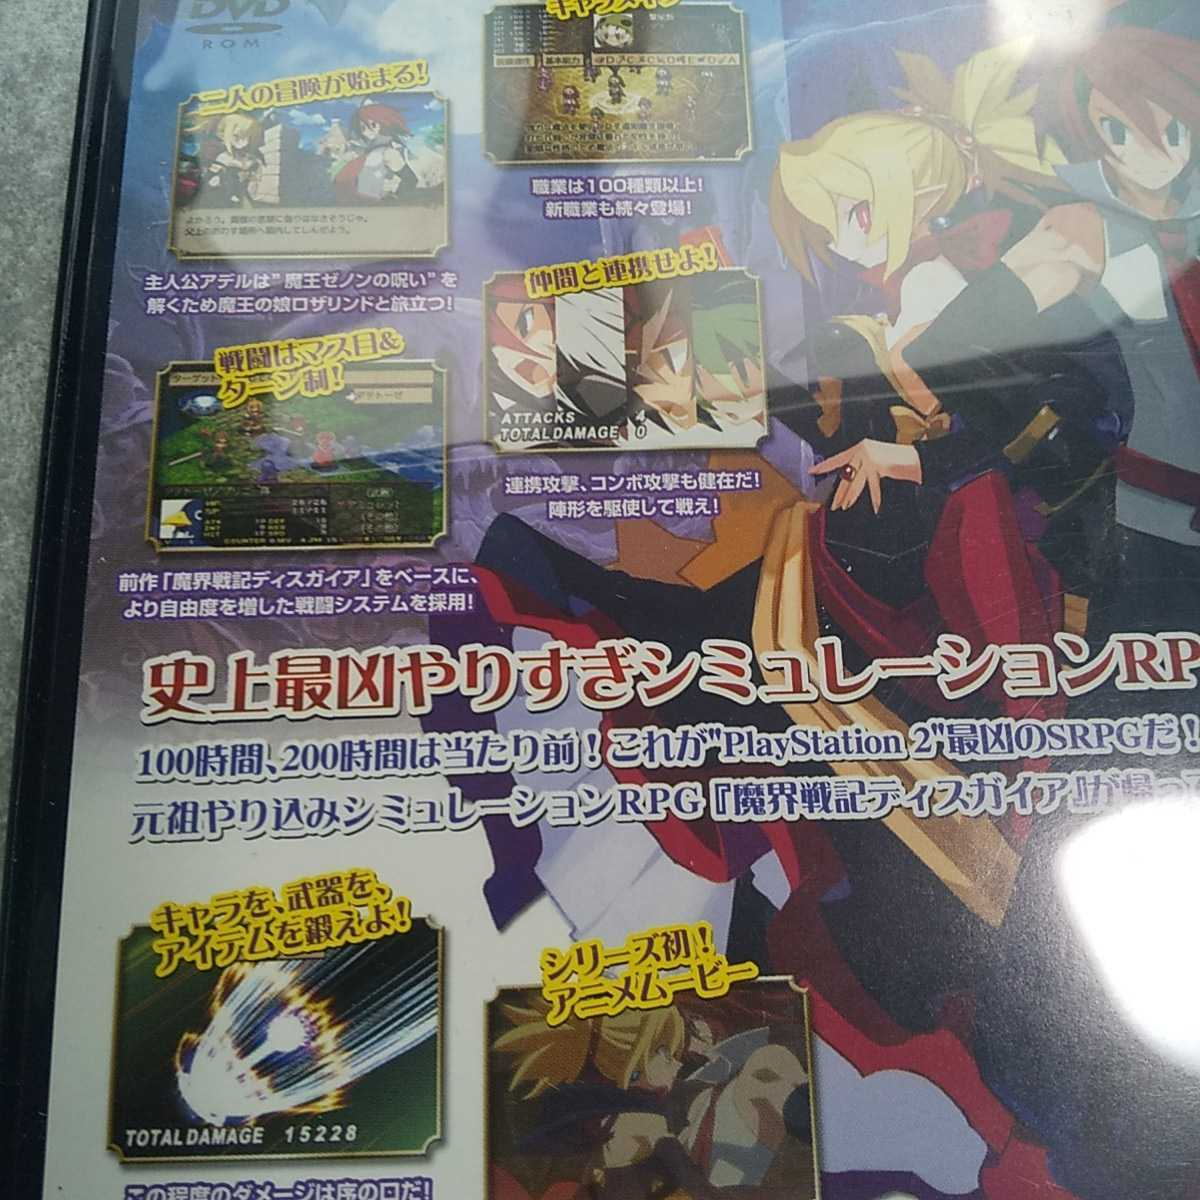 PS2【魔界戦記ディスガイア2】送料無料 返金保証あり